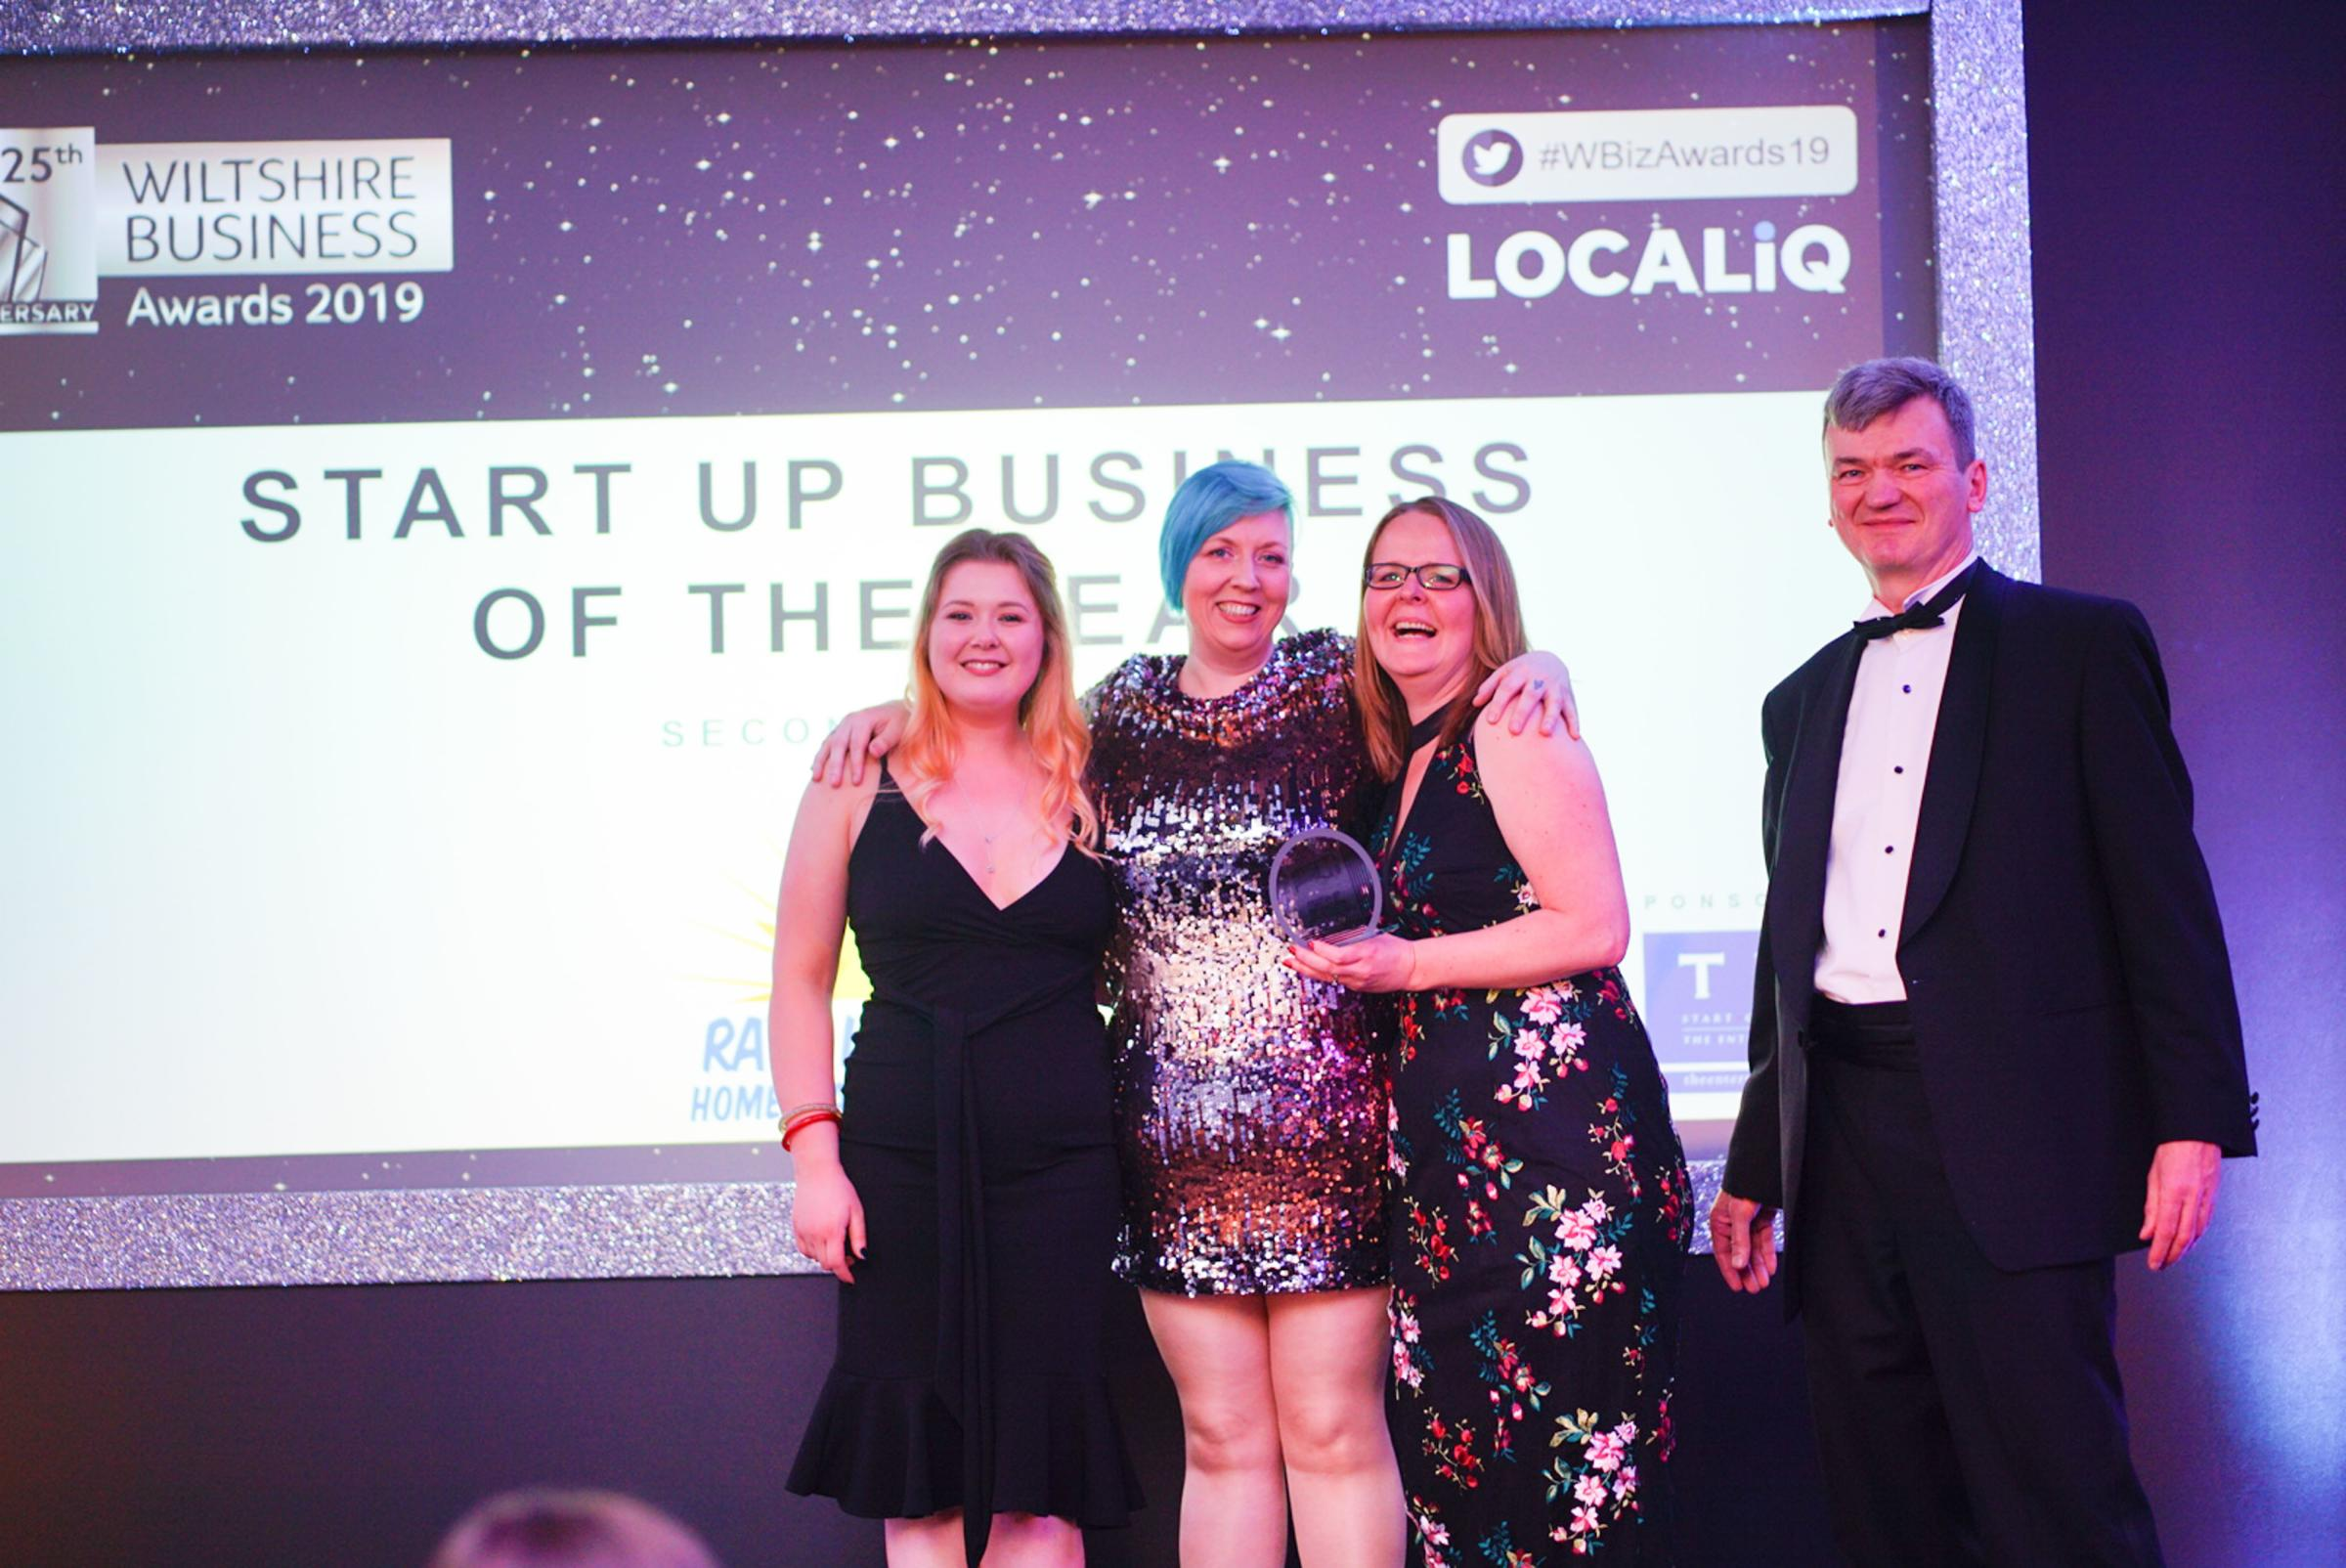 Wiltshire Bussiness Awards 2019 -Ray's Manufacturing Ltd